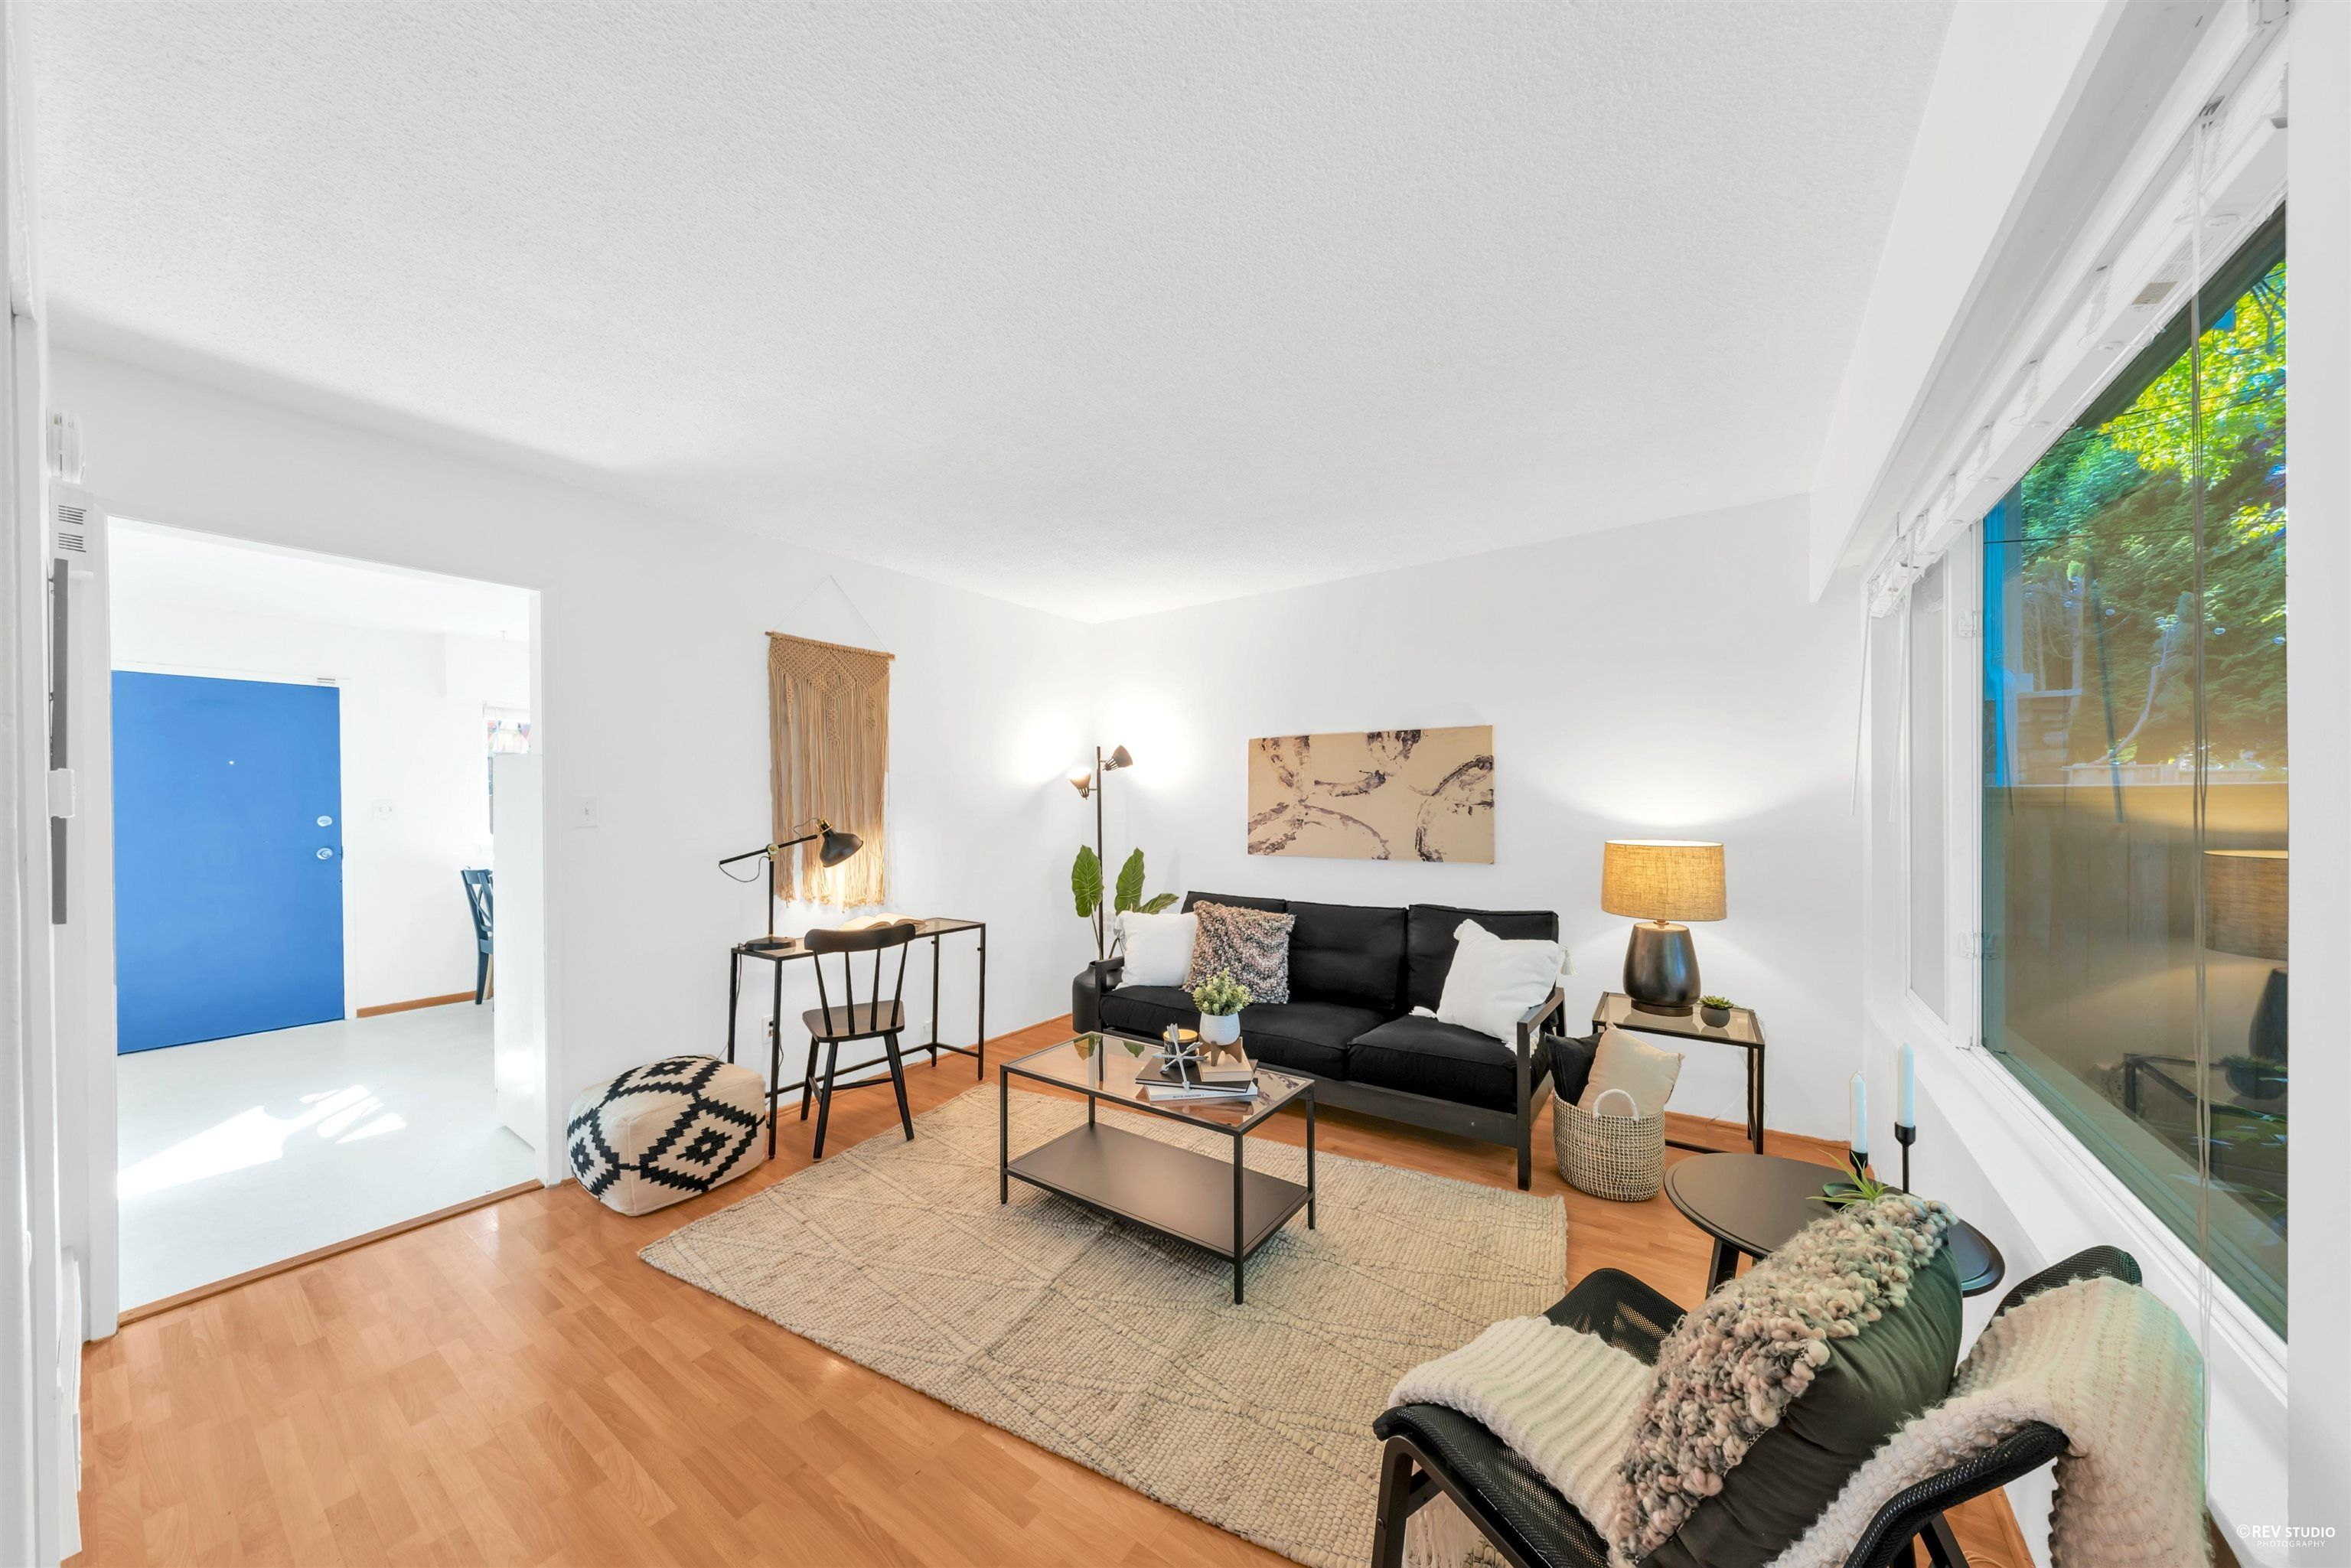 Main Photo: 1336 - 1338 E 15TH Avenue in Vancouver: Grandview Woodland Duplex for sale (Vancouver East)  : MLS®# R2625400